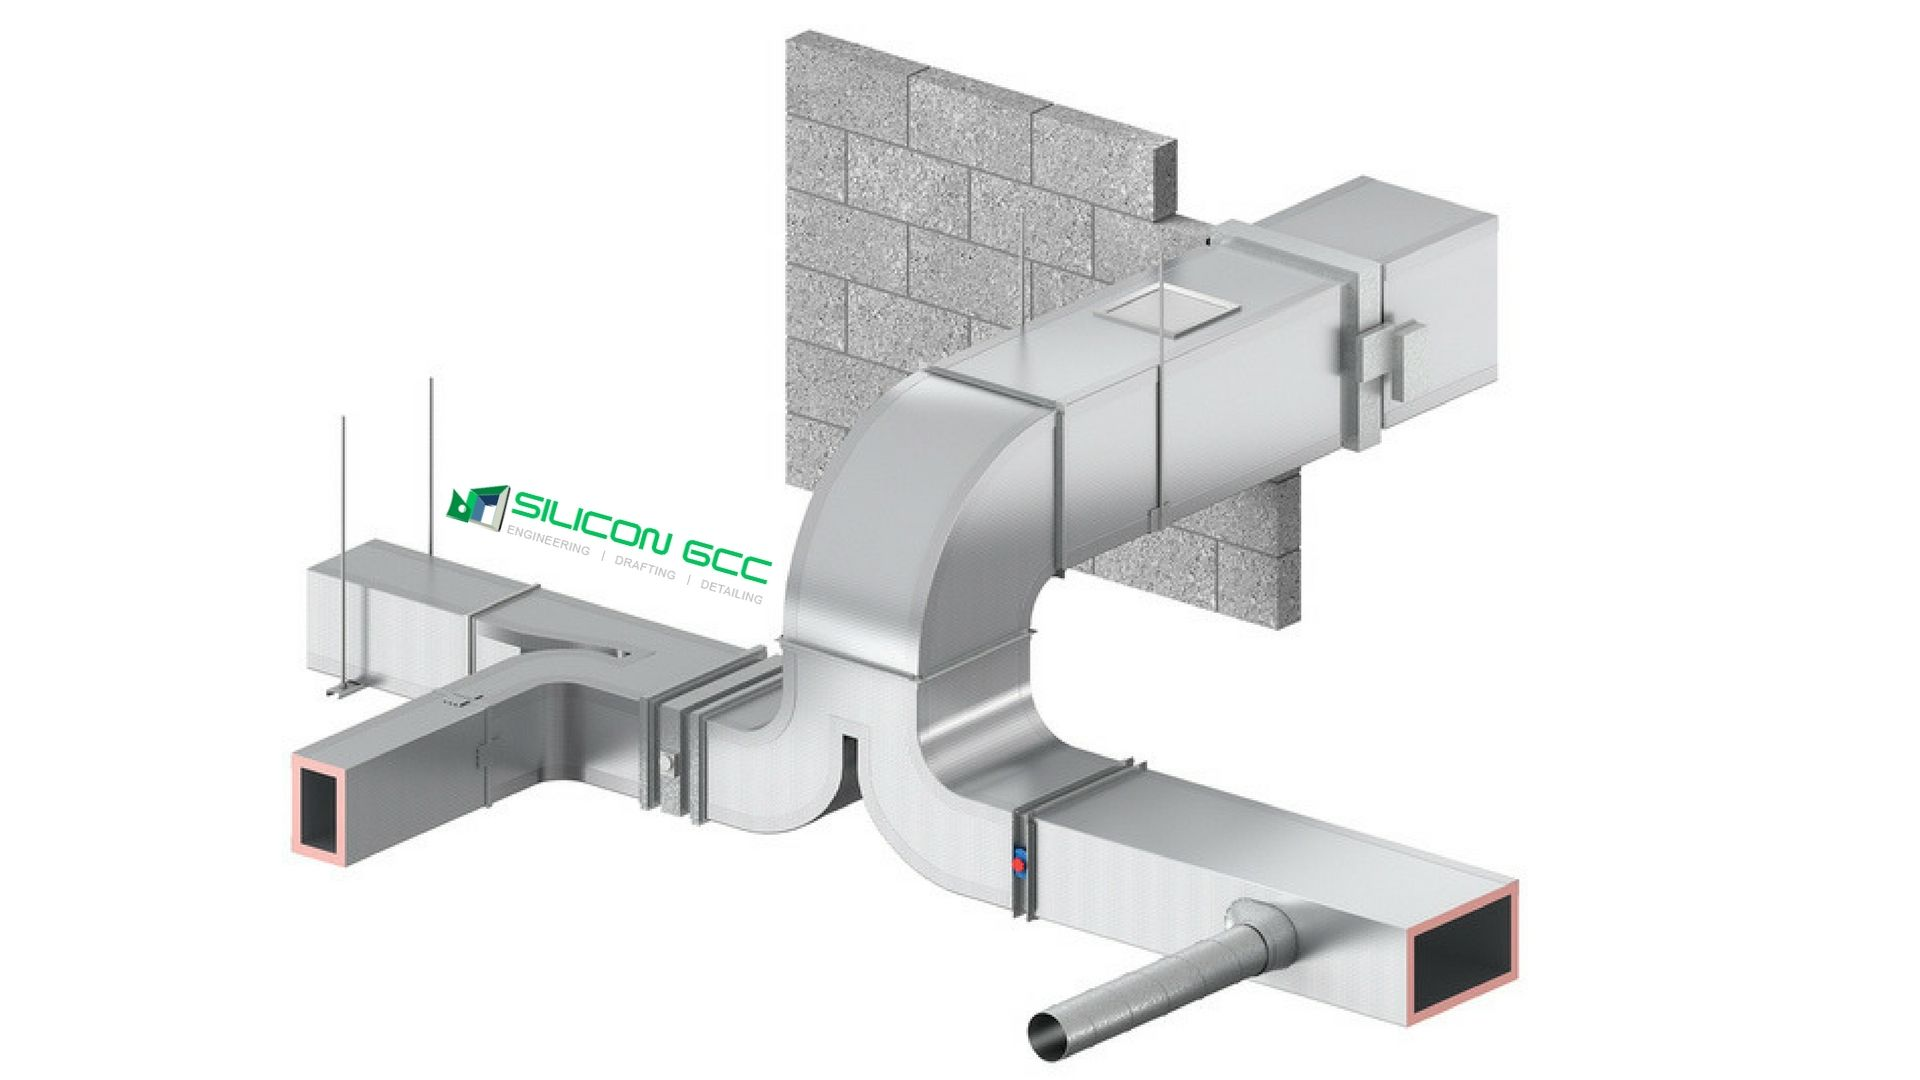 hight resolution of hvac duct components incorporate programmed drawing of extensive rectangular and circular duct fittings fire dampers flex ducts control dampers and